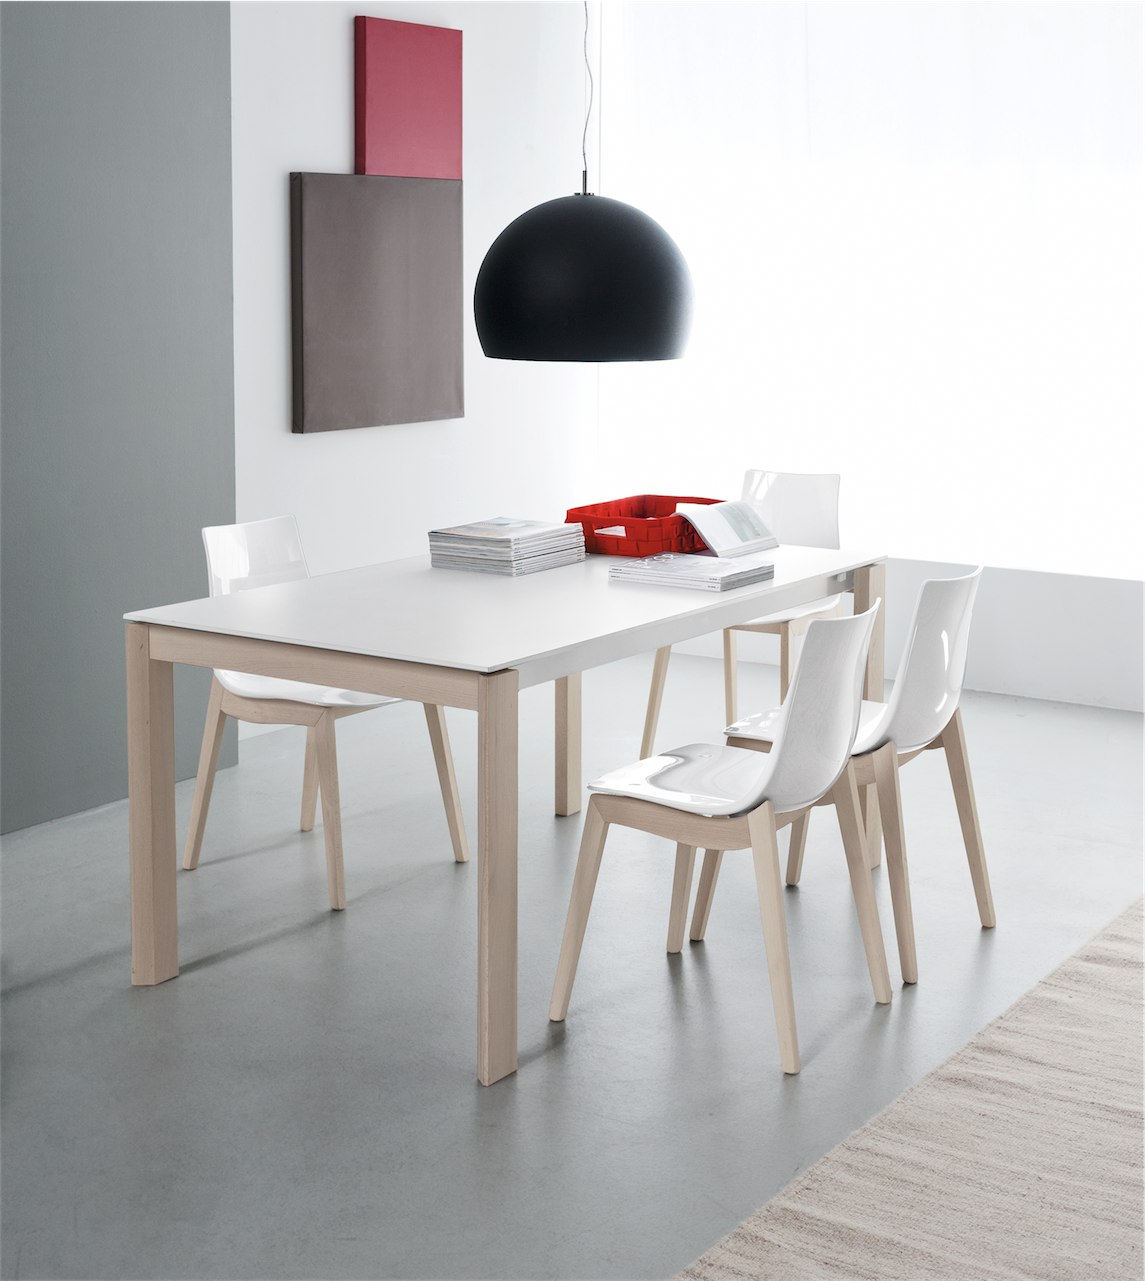 Sedia Led W CB/1507 Connubia By Calligaris